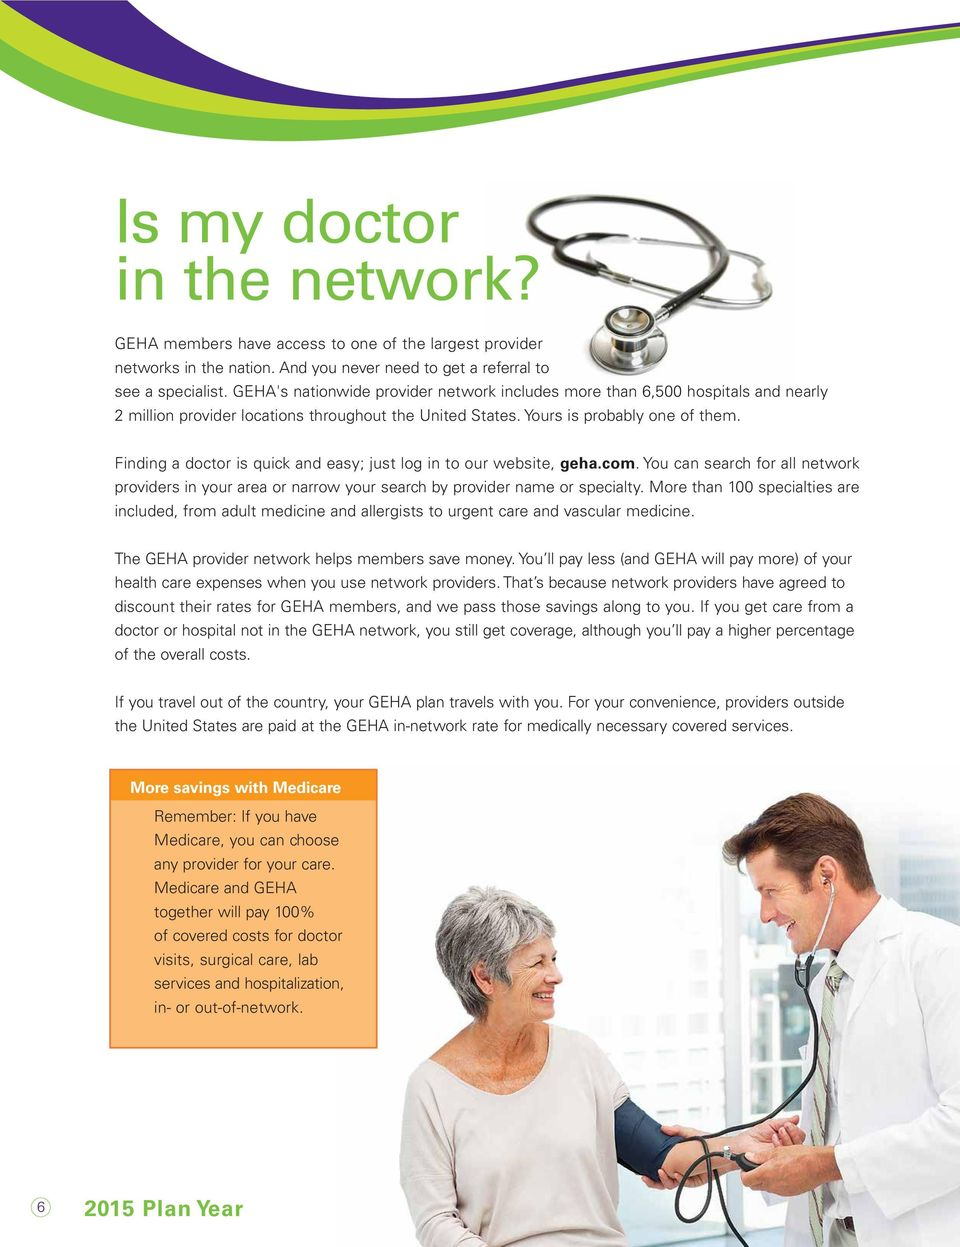 Finding a doctor is quick and easy; just log in to our website, geha.com. You can search for all network providers in your area or narrow your search by provider name or specialty.